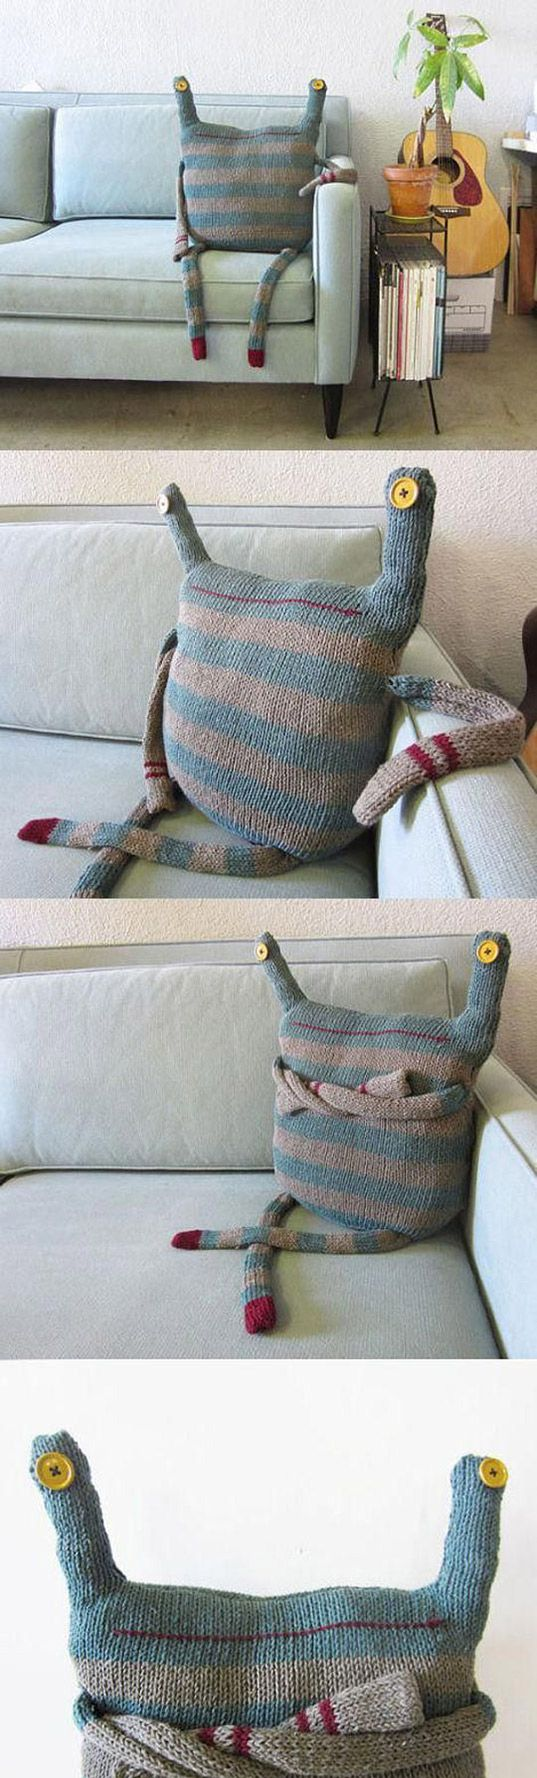 Monster doll made from old clothes.....one of my absolute favorites!